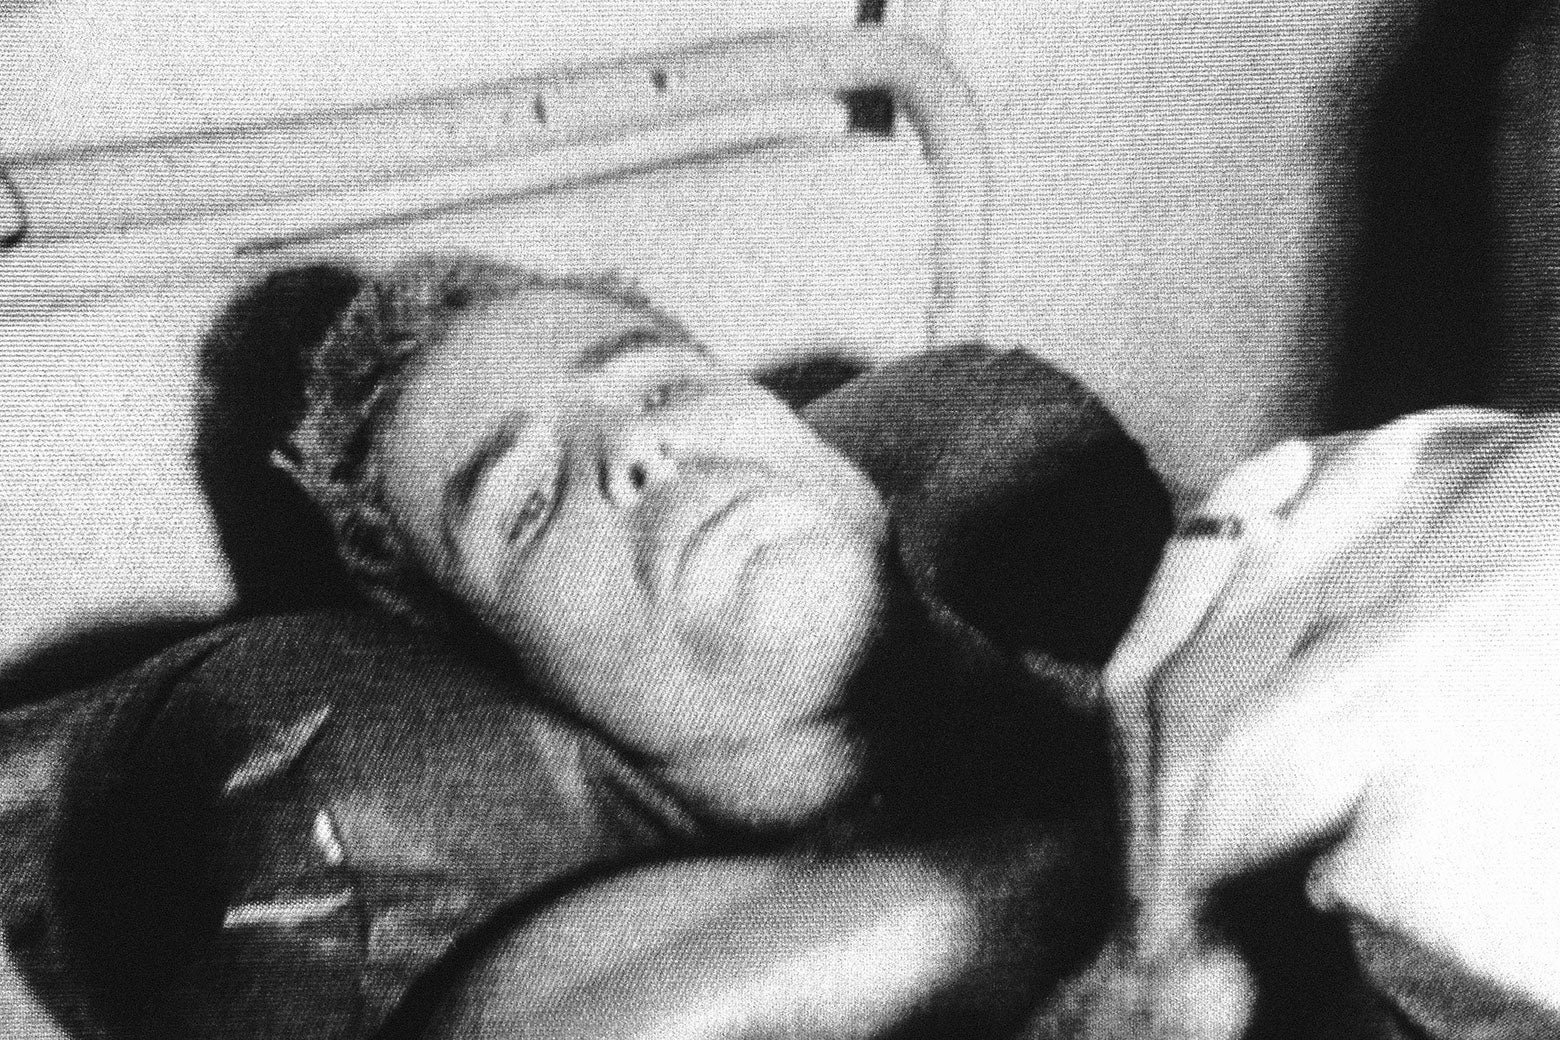 Grainy black and white photo of young McCain on a hospital bed